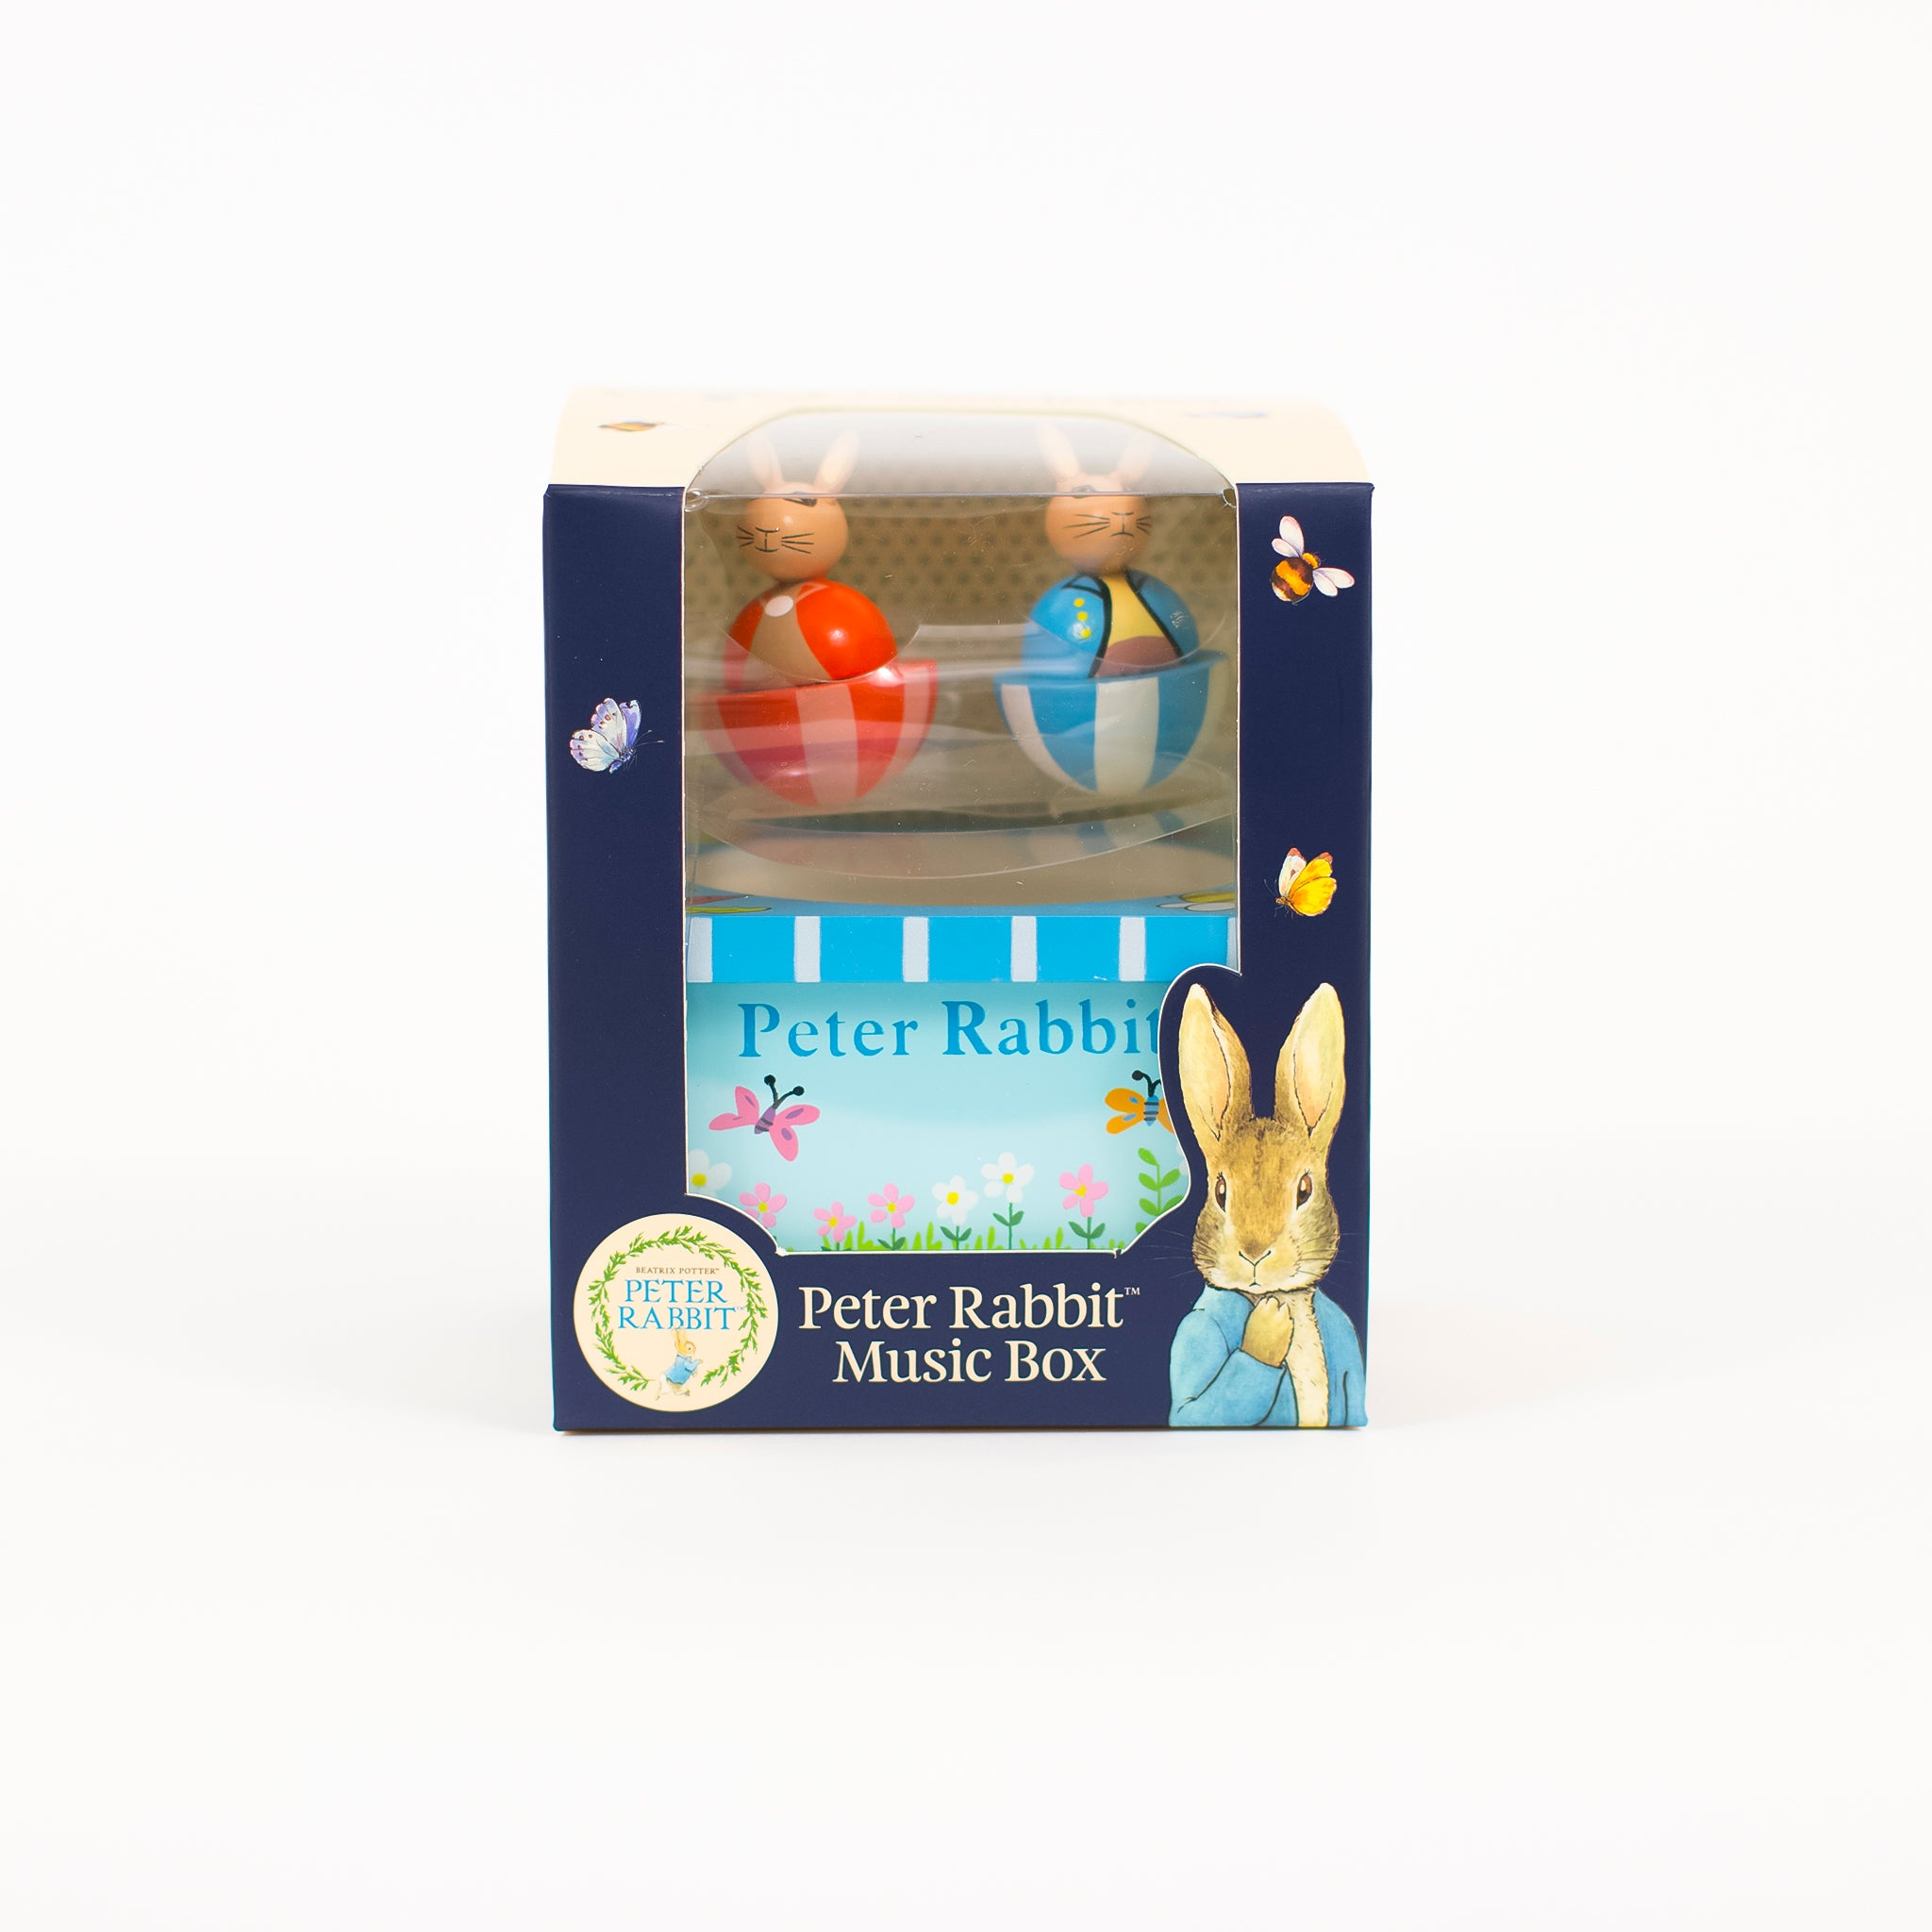 Peter Rabbit Music Box